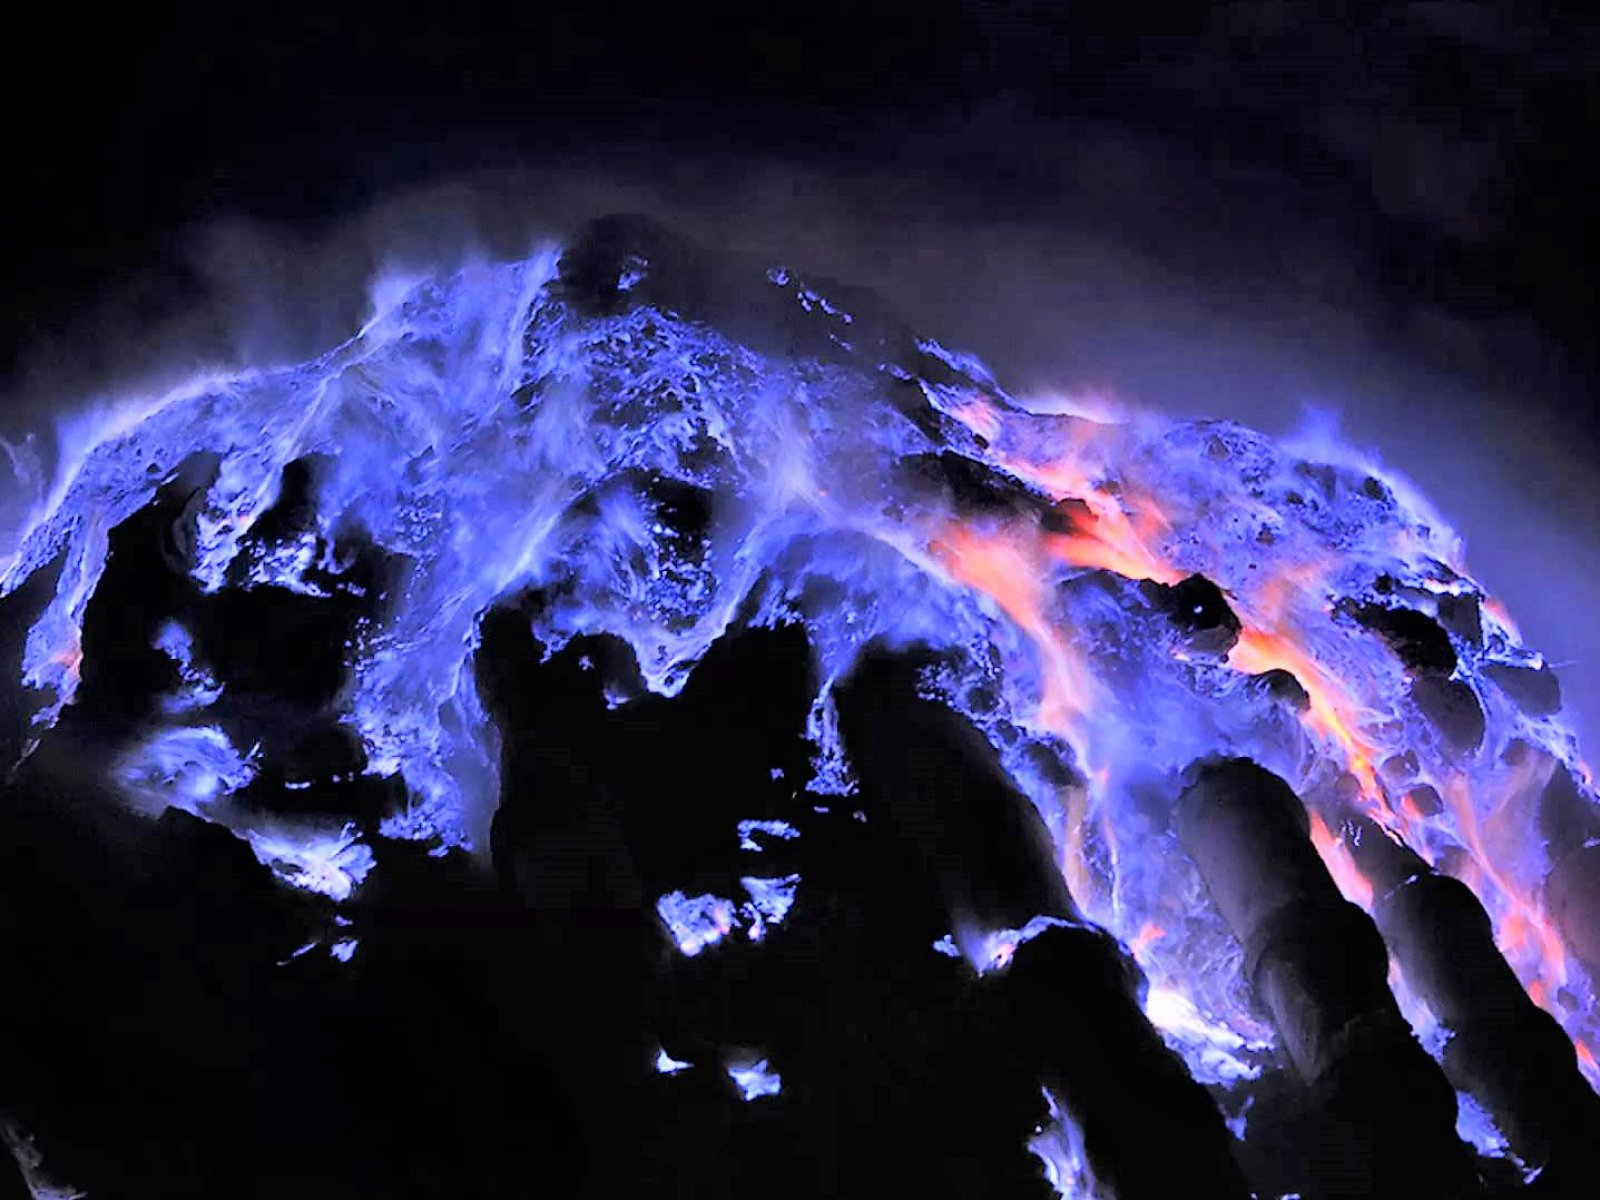 How to watch the blue flame of the Ijen Volcano on Java island